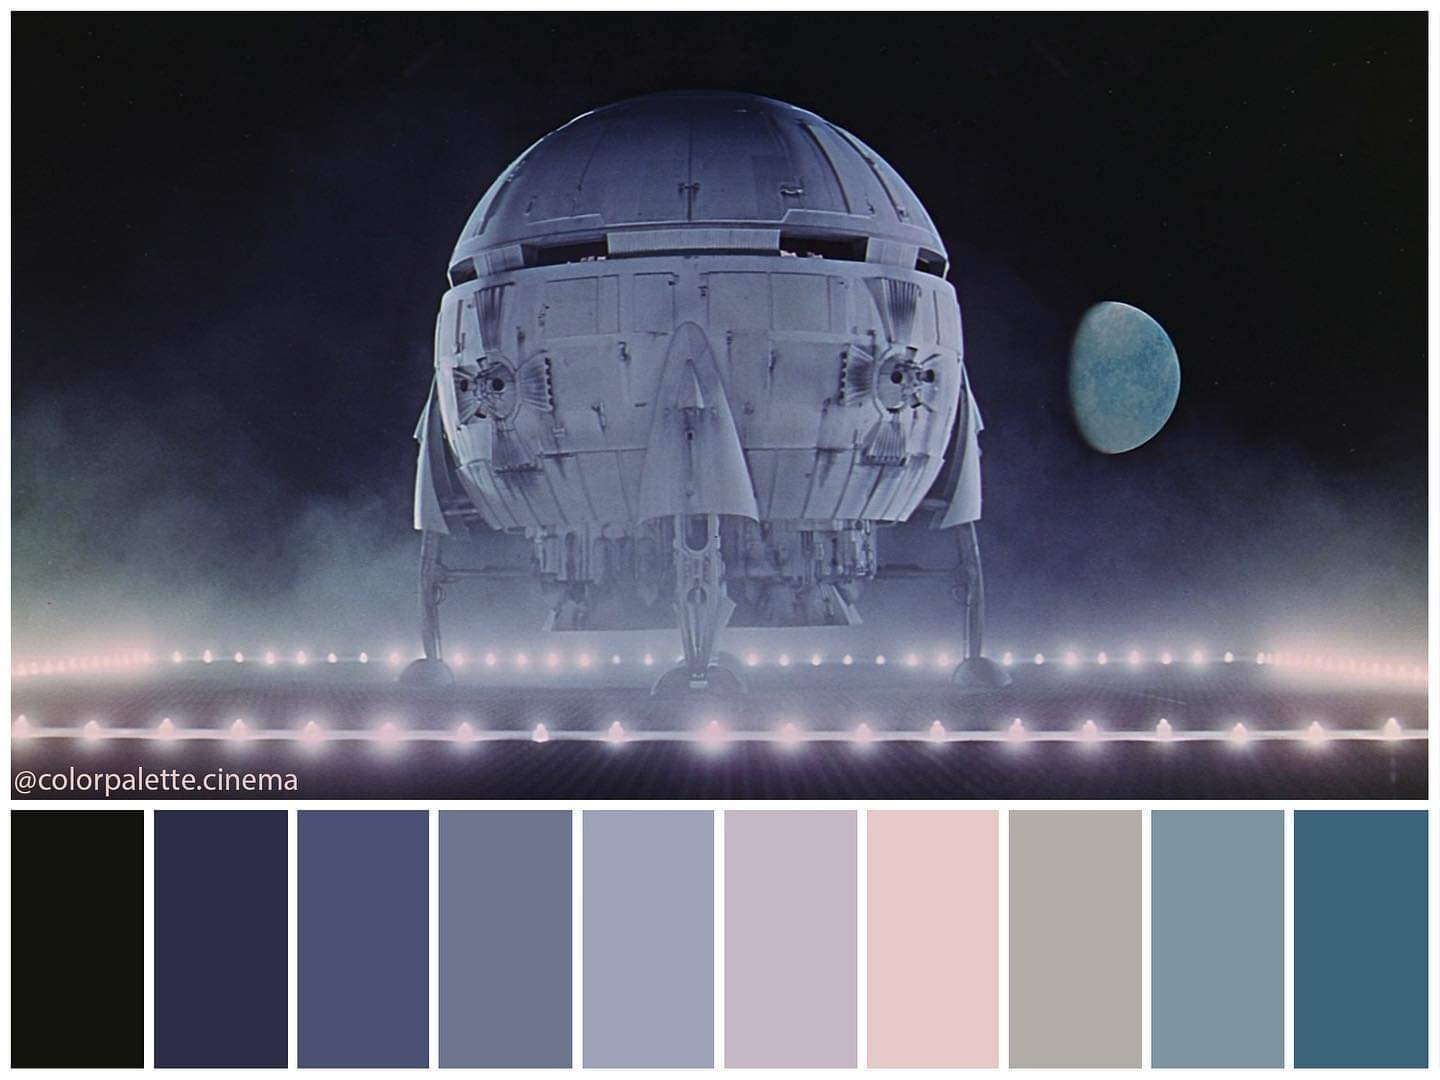 color-palette-cinema-2.jpg